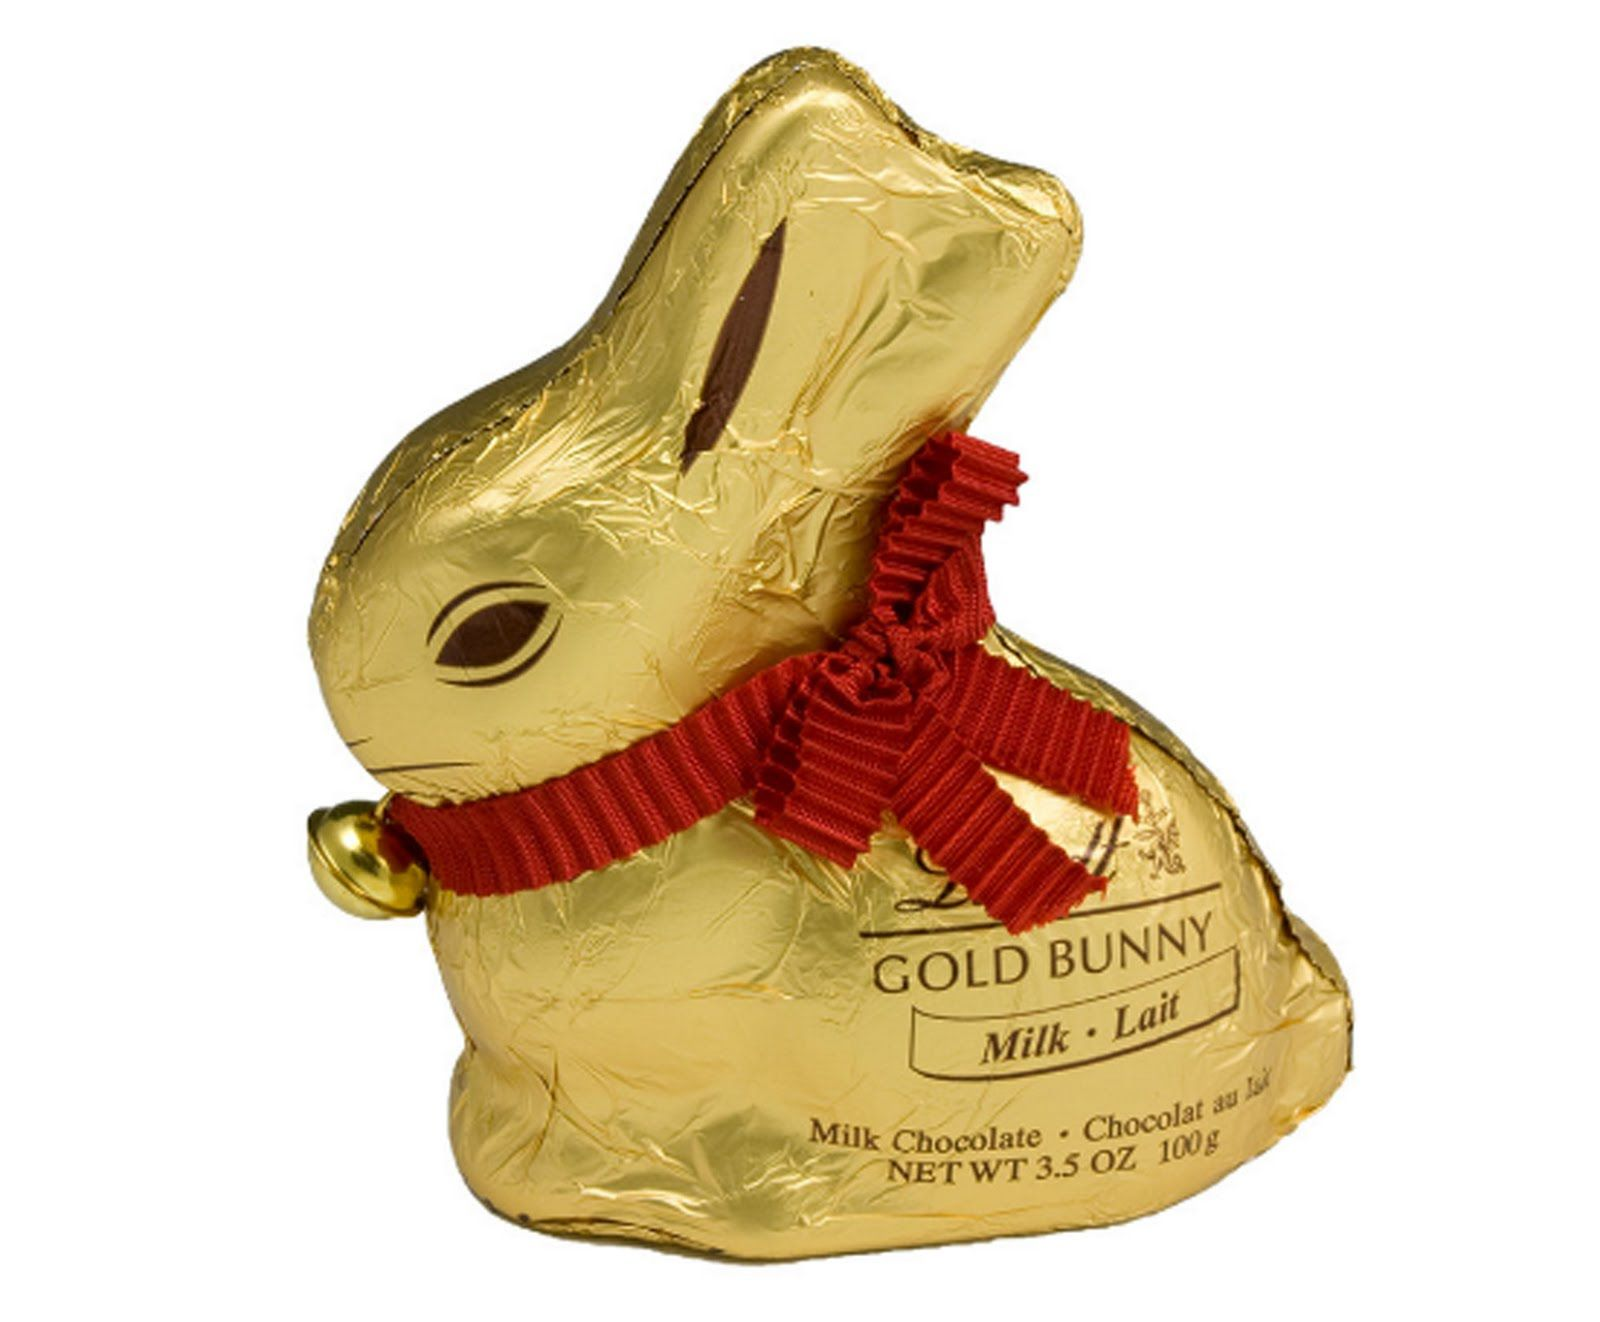 Lindt Lindt Gold Bunny Chocolate Chocolate Easter Bunny